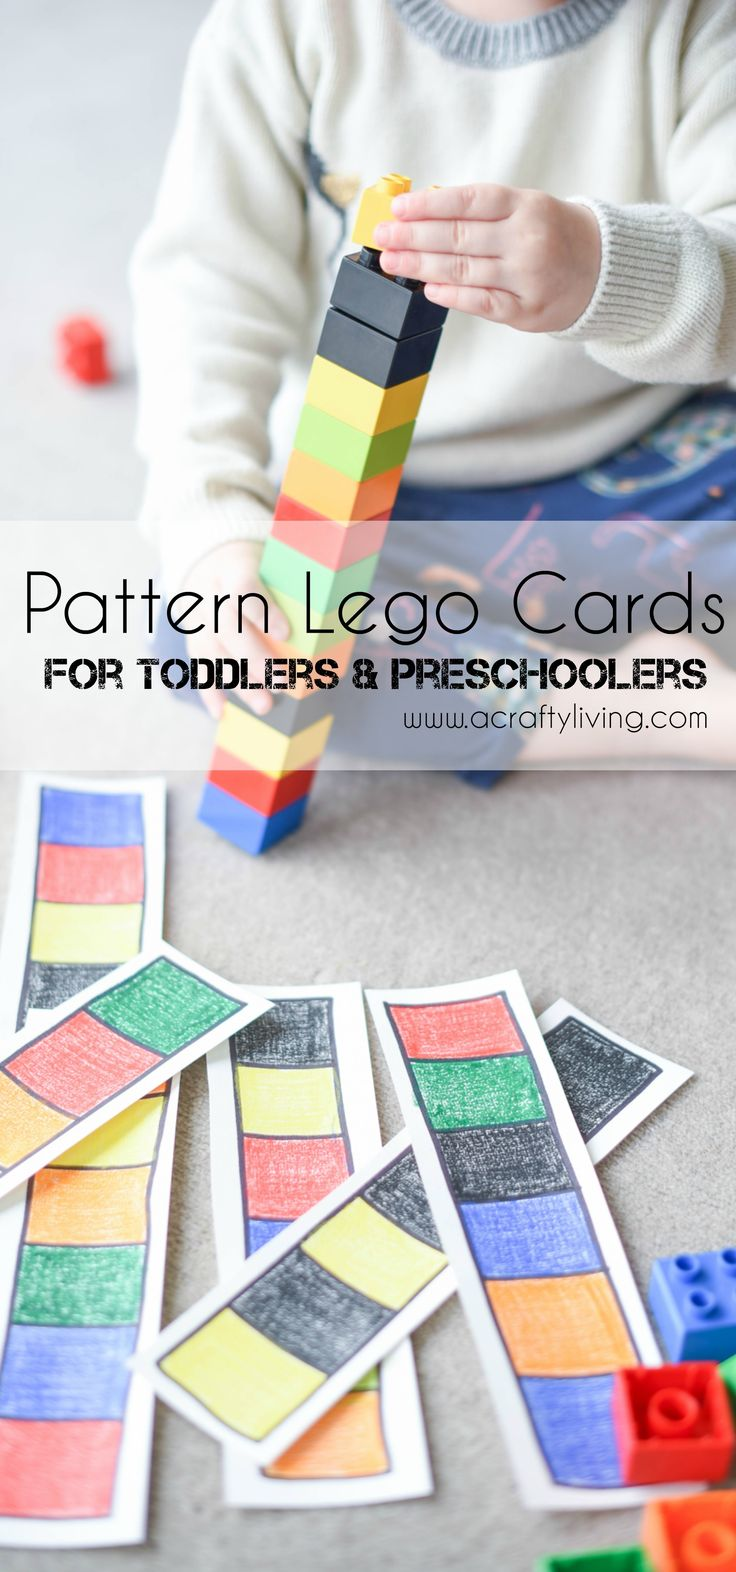 DIY Lego Pattern Cards for Toddlers & Preschoolers! www.acraftyliving.com